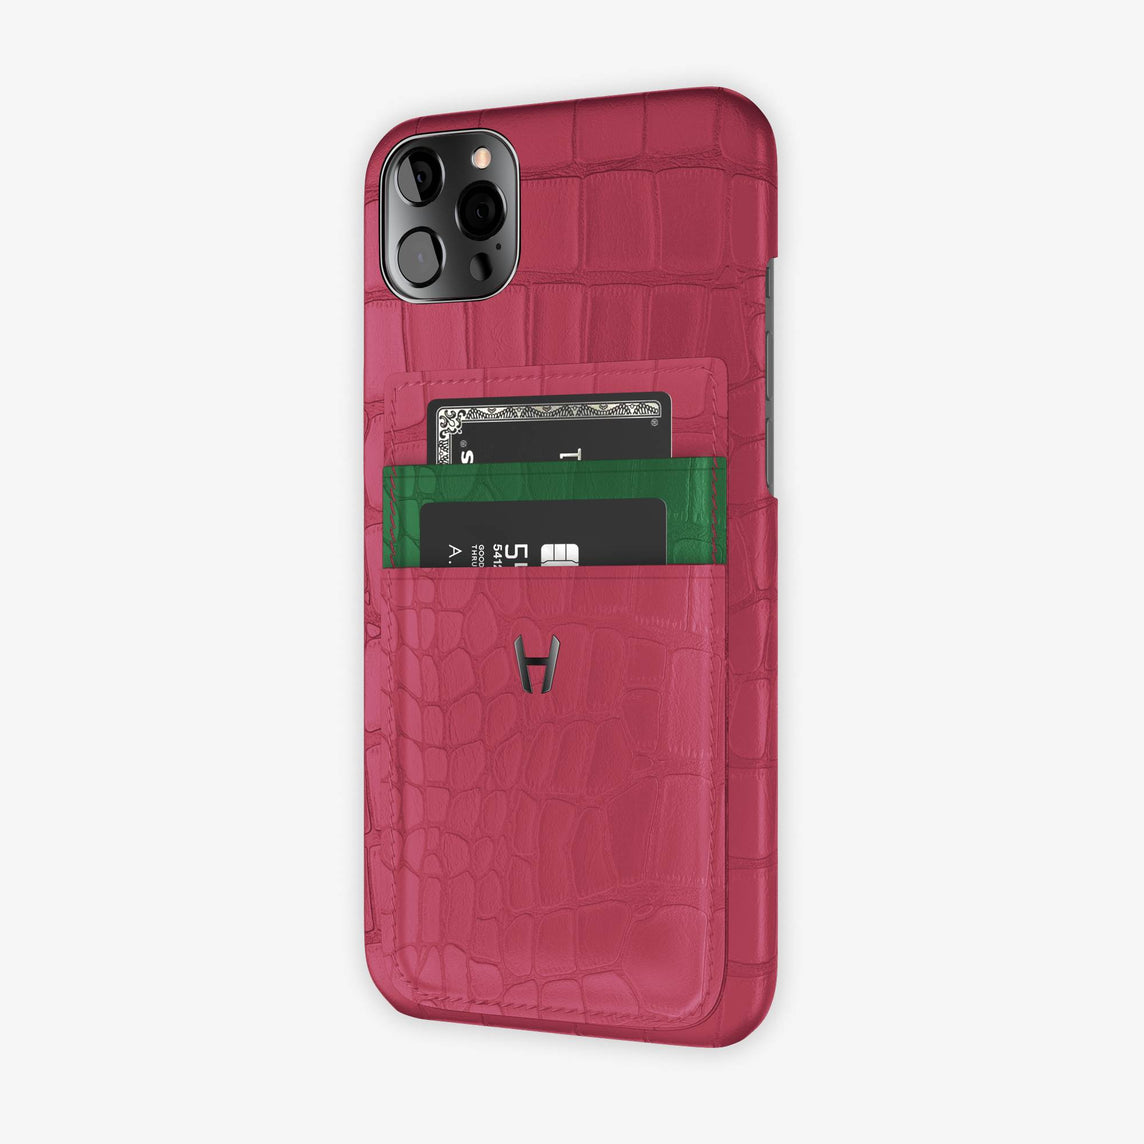 Alligator Pocket Case iPhone 12 Pro Max | Pink Girly/Green Emerald - Black